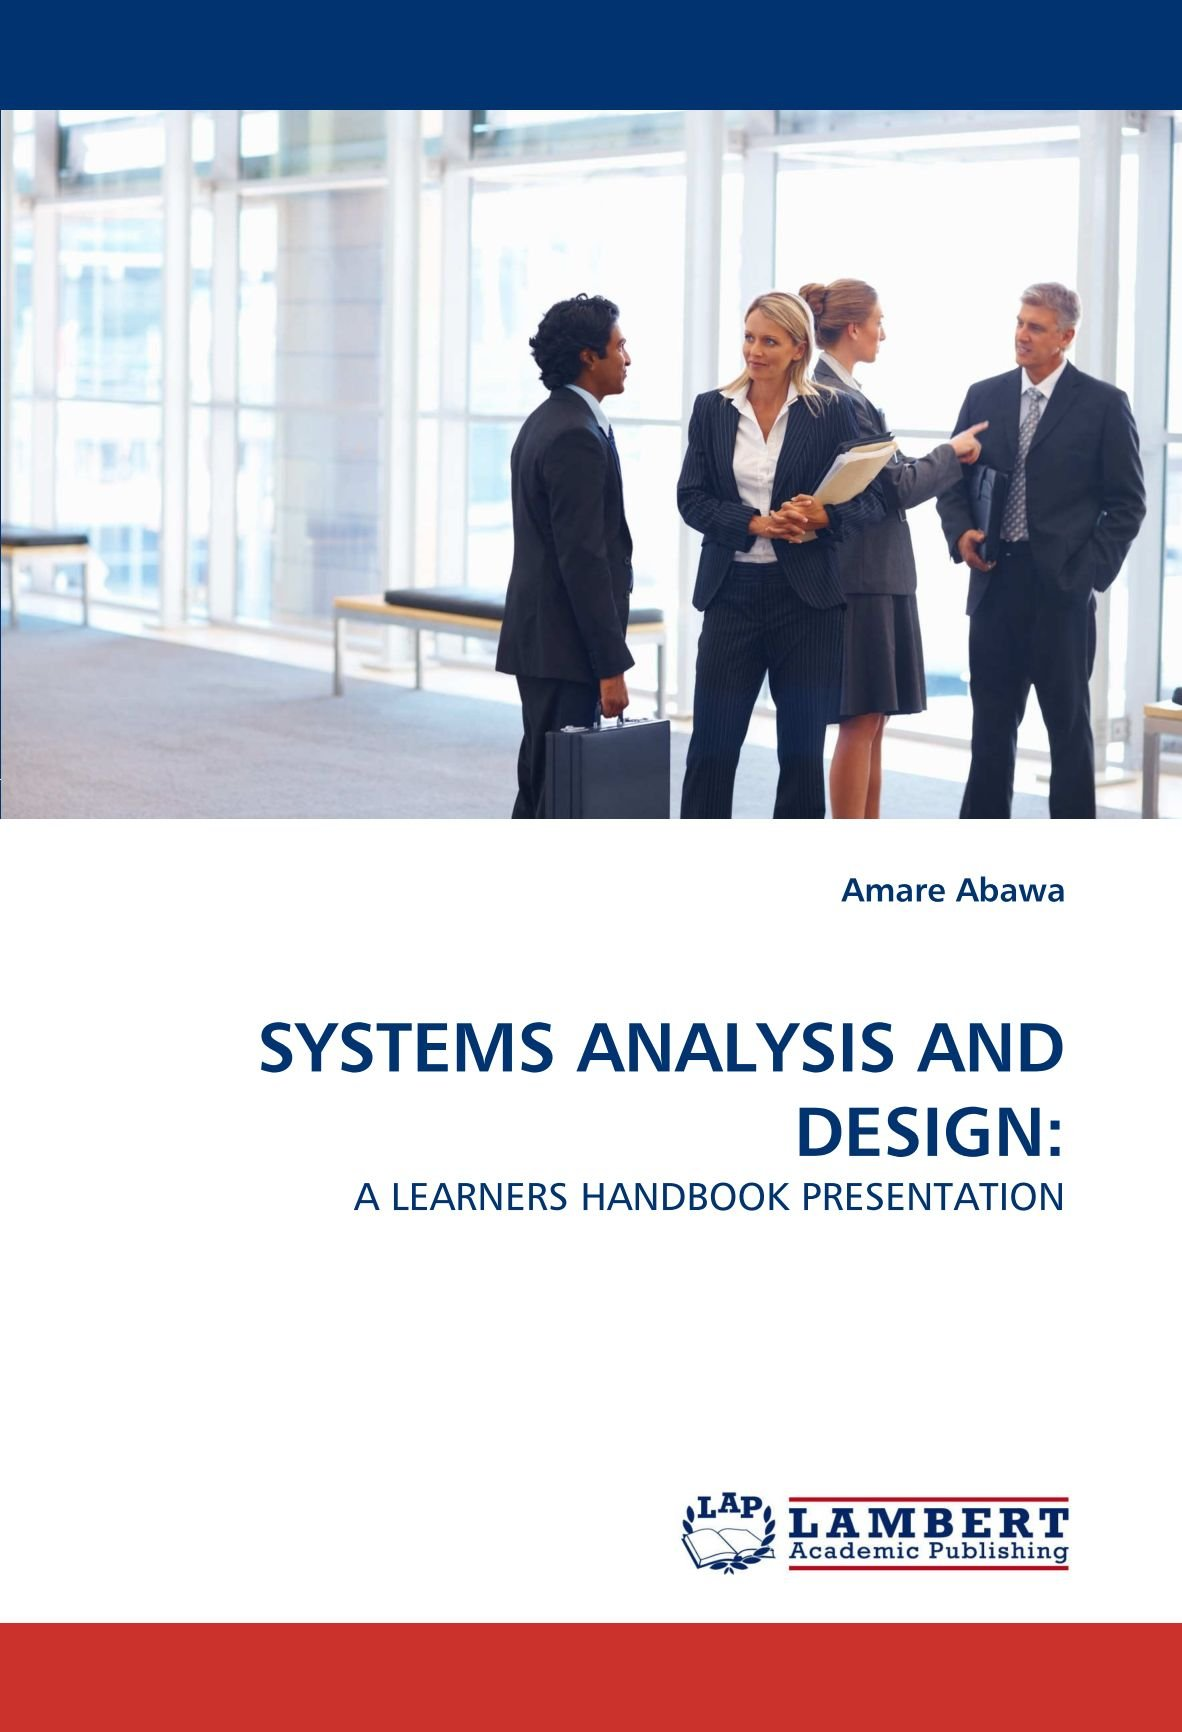 Systems Analysis And Design A Learners Handbook Presentation Abawa Amare 9783843383172 Amazon Com Books